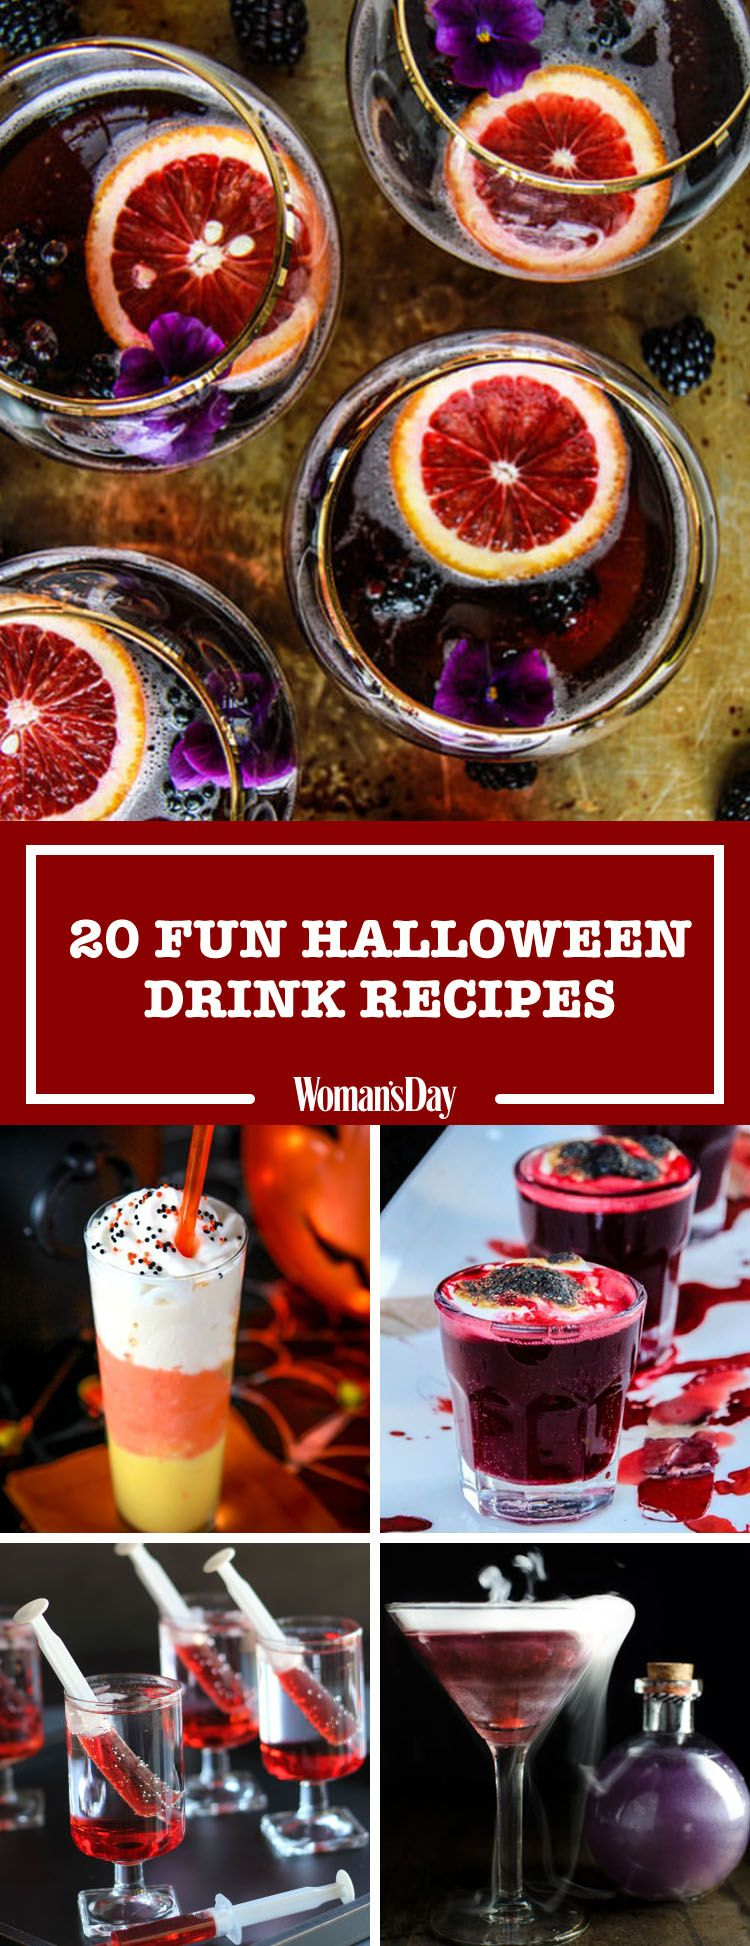 25 Easy Halloween Cocktails & Drinks - Recipes for Halloween Drink ...